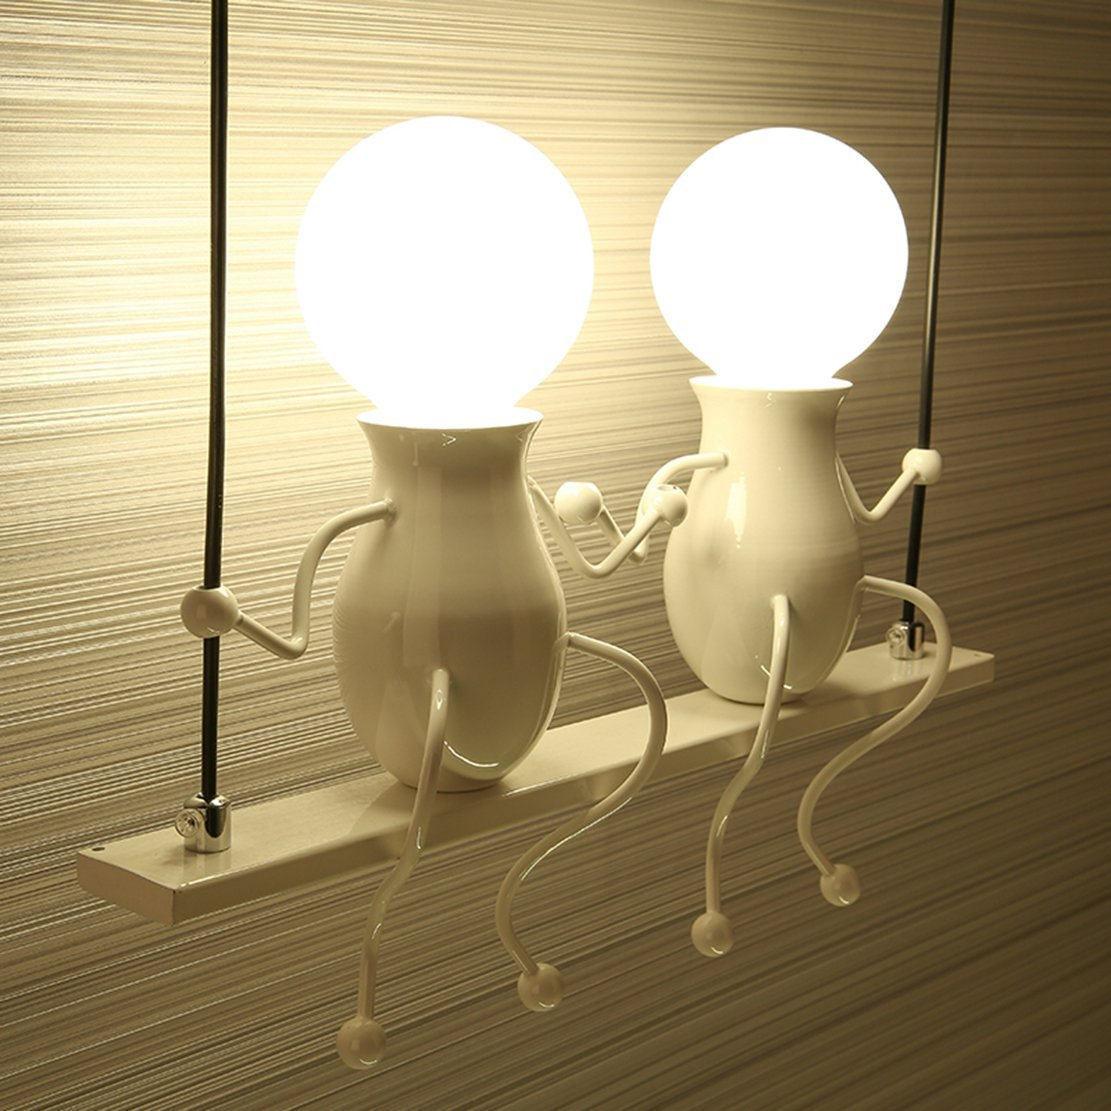 cool product alert cute led wall sconces. Black Bedroom Furniture Sets. Home Design Ideas